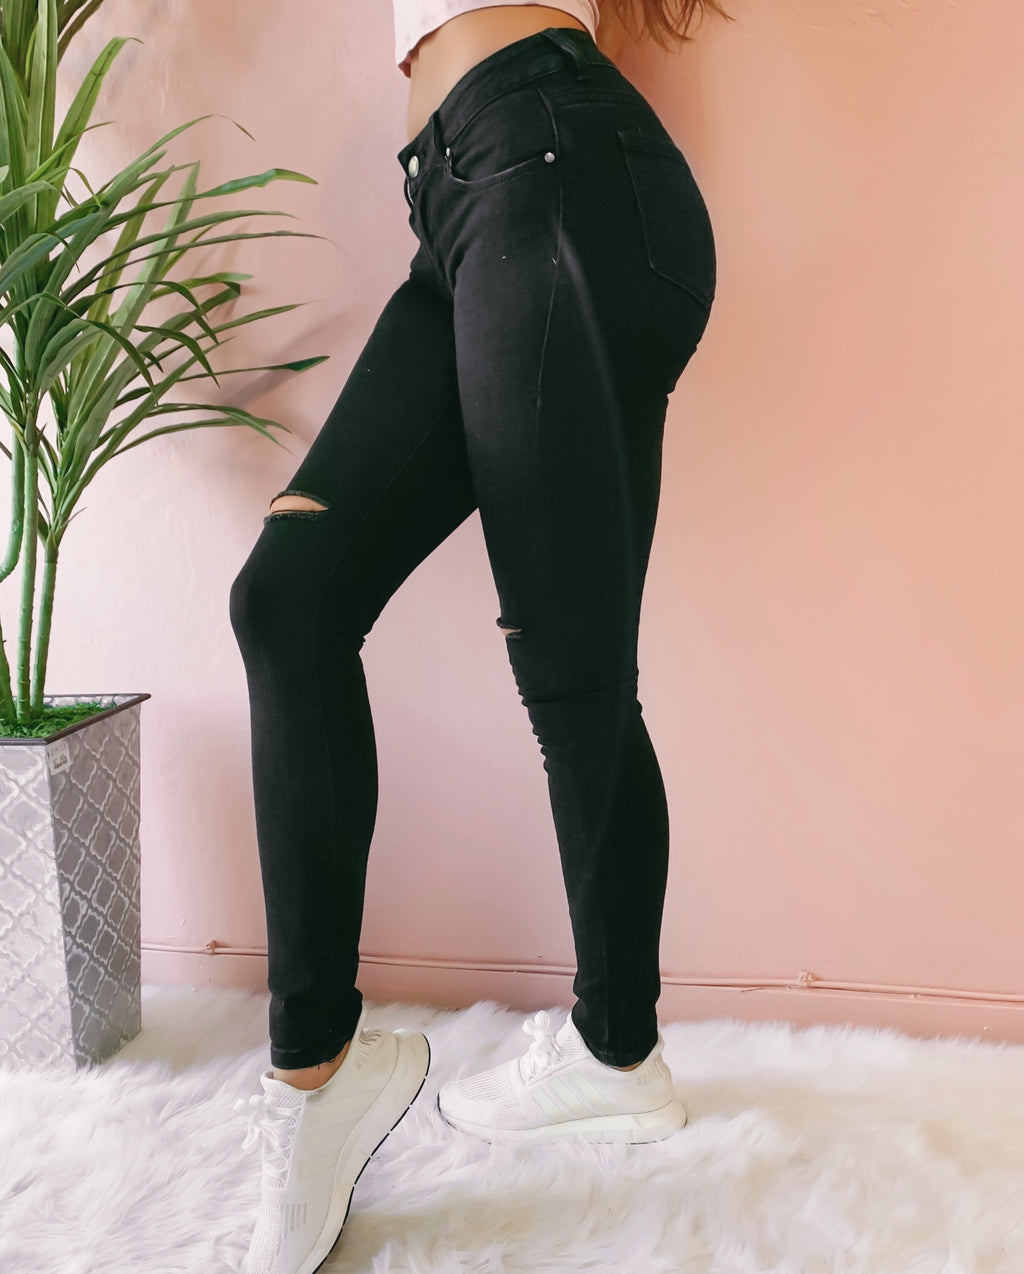 CASSIE KNEE SLIT BLACK DENIM JEANS